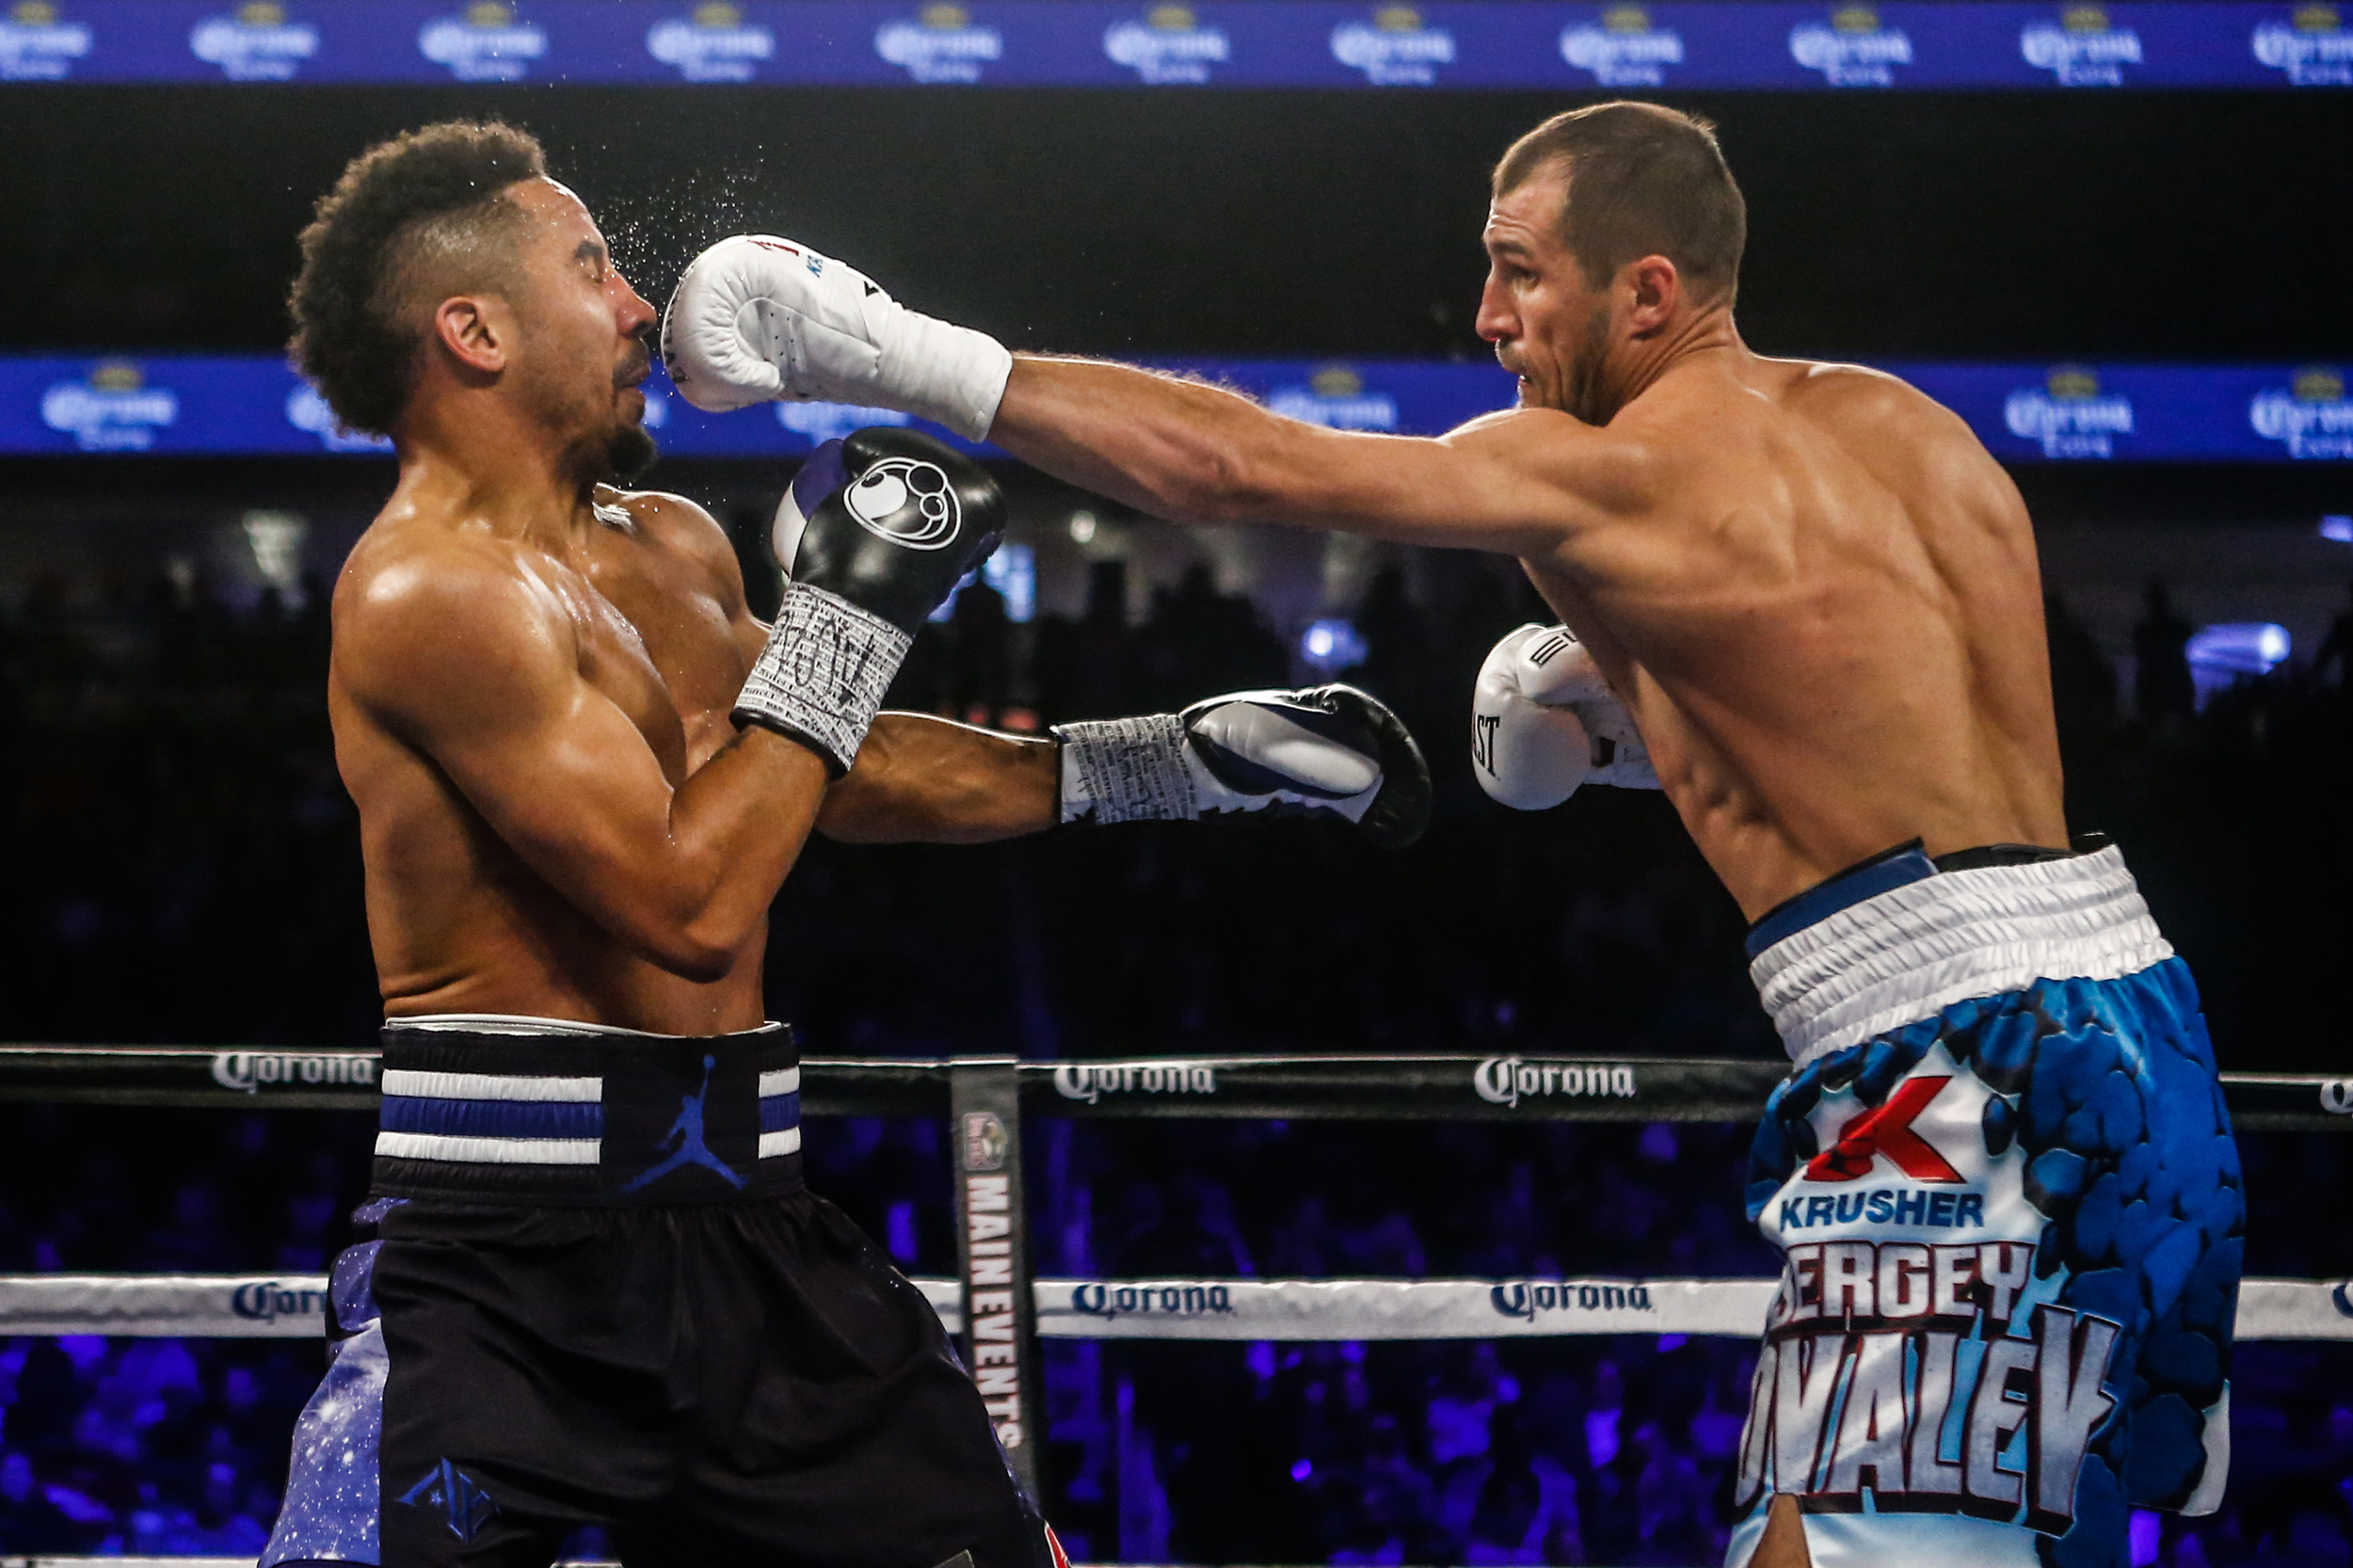 Light Heavyweight boxers Andre Ward( black trunks) and Sergey Kovalev(blue trunks) fights for the WBA/WBO/IBF world light heavyweight championship in a twelve-round bout on November 19th at the T-Mobile Arena in Las Vegas.(Anthony Geathers for ESPN)